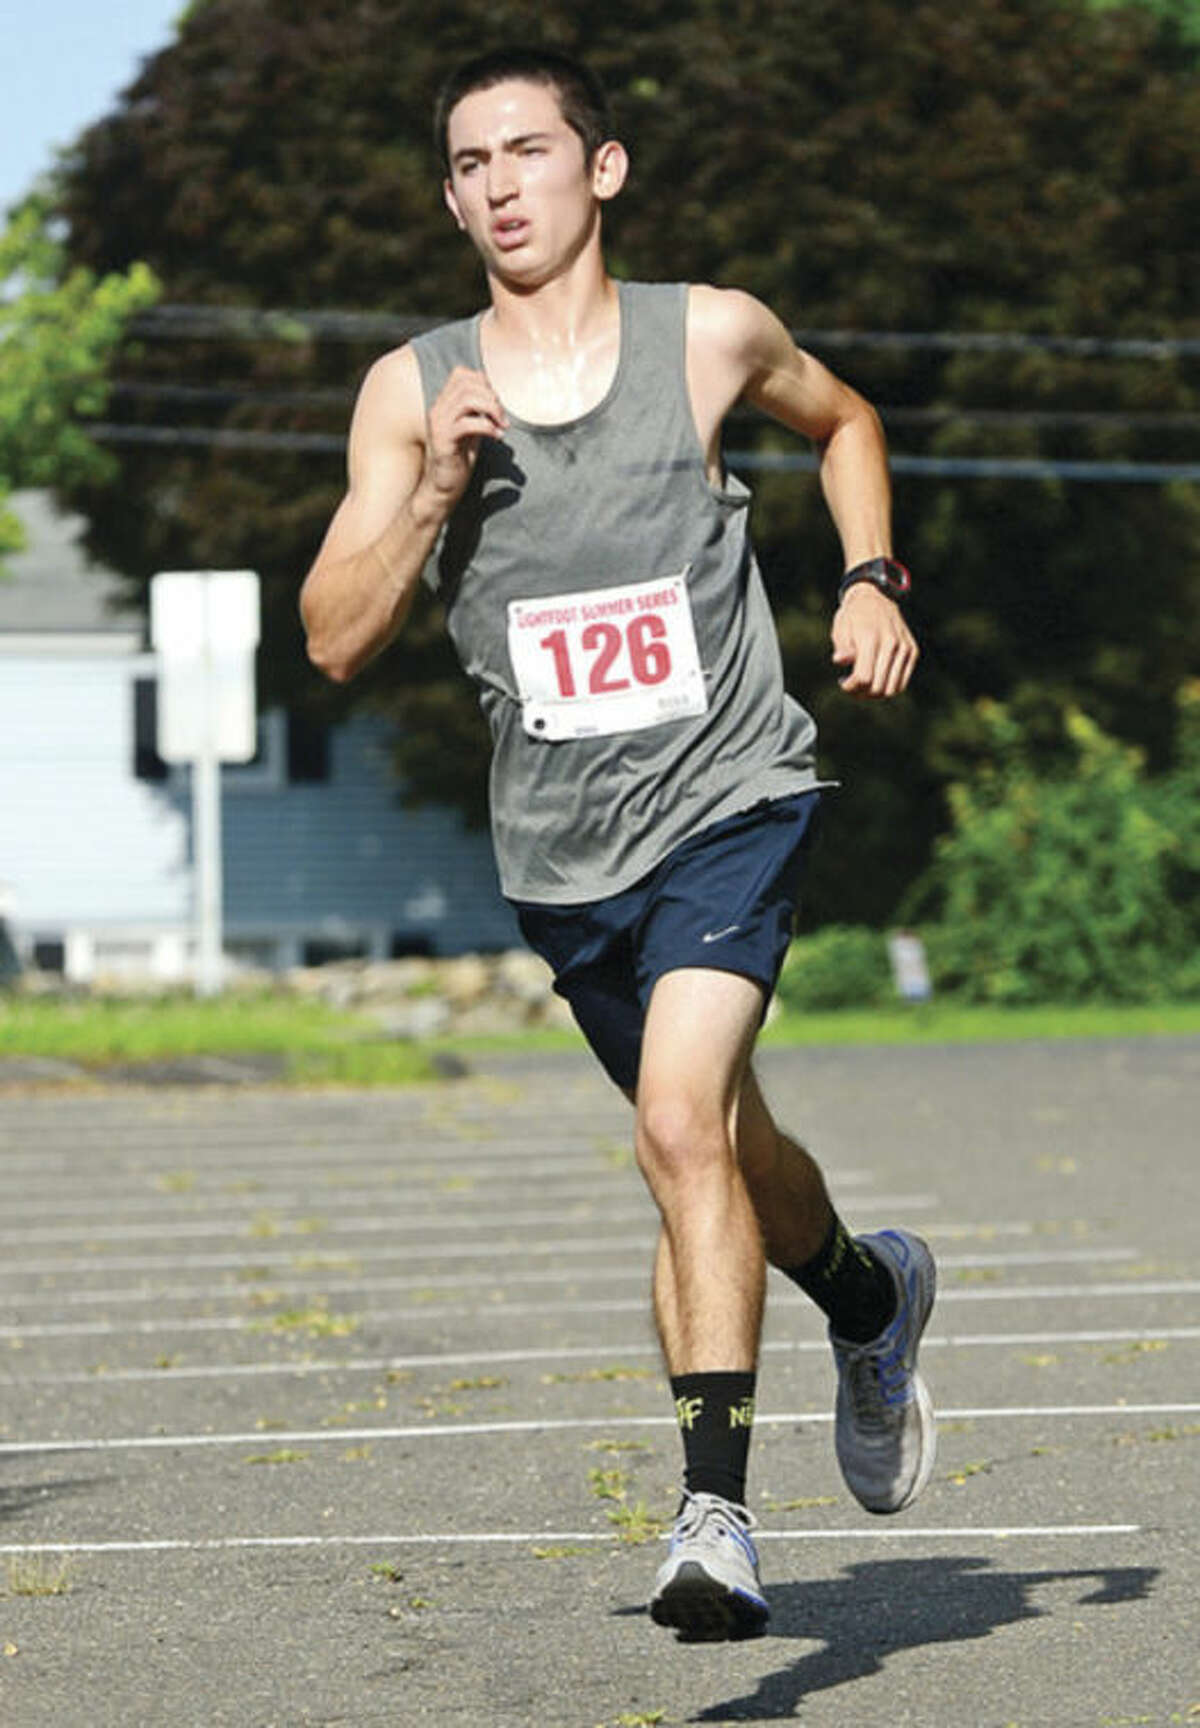 Hour photo/Erik Trautmann Eric van der Els races toward the finish line to win the Lightfoot Road Runners Series 7-mile road race at Brien McMahon High School on Saturday in Norwalk.